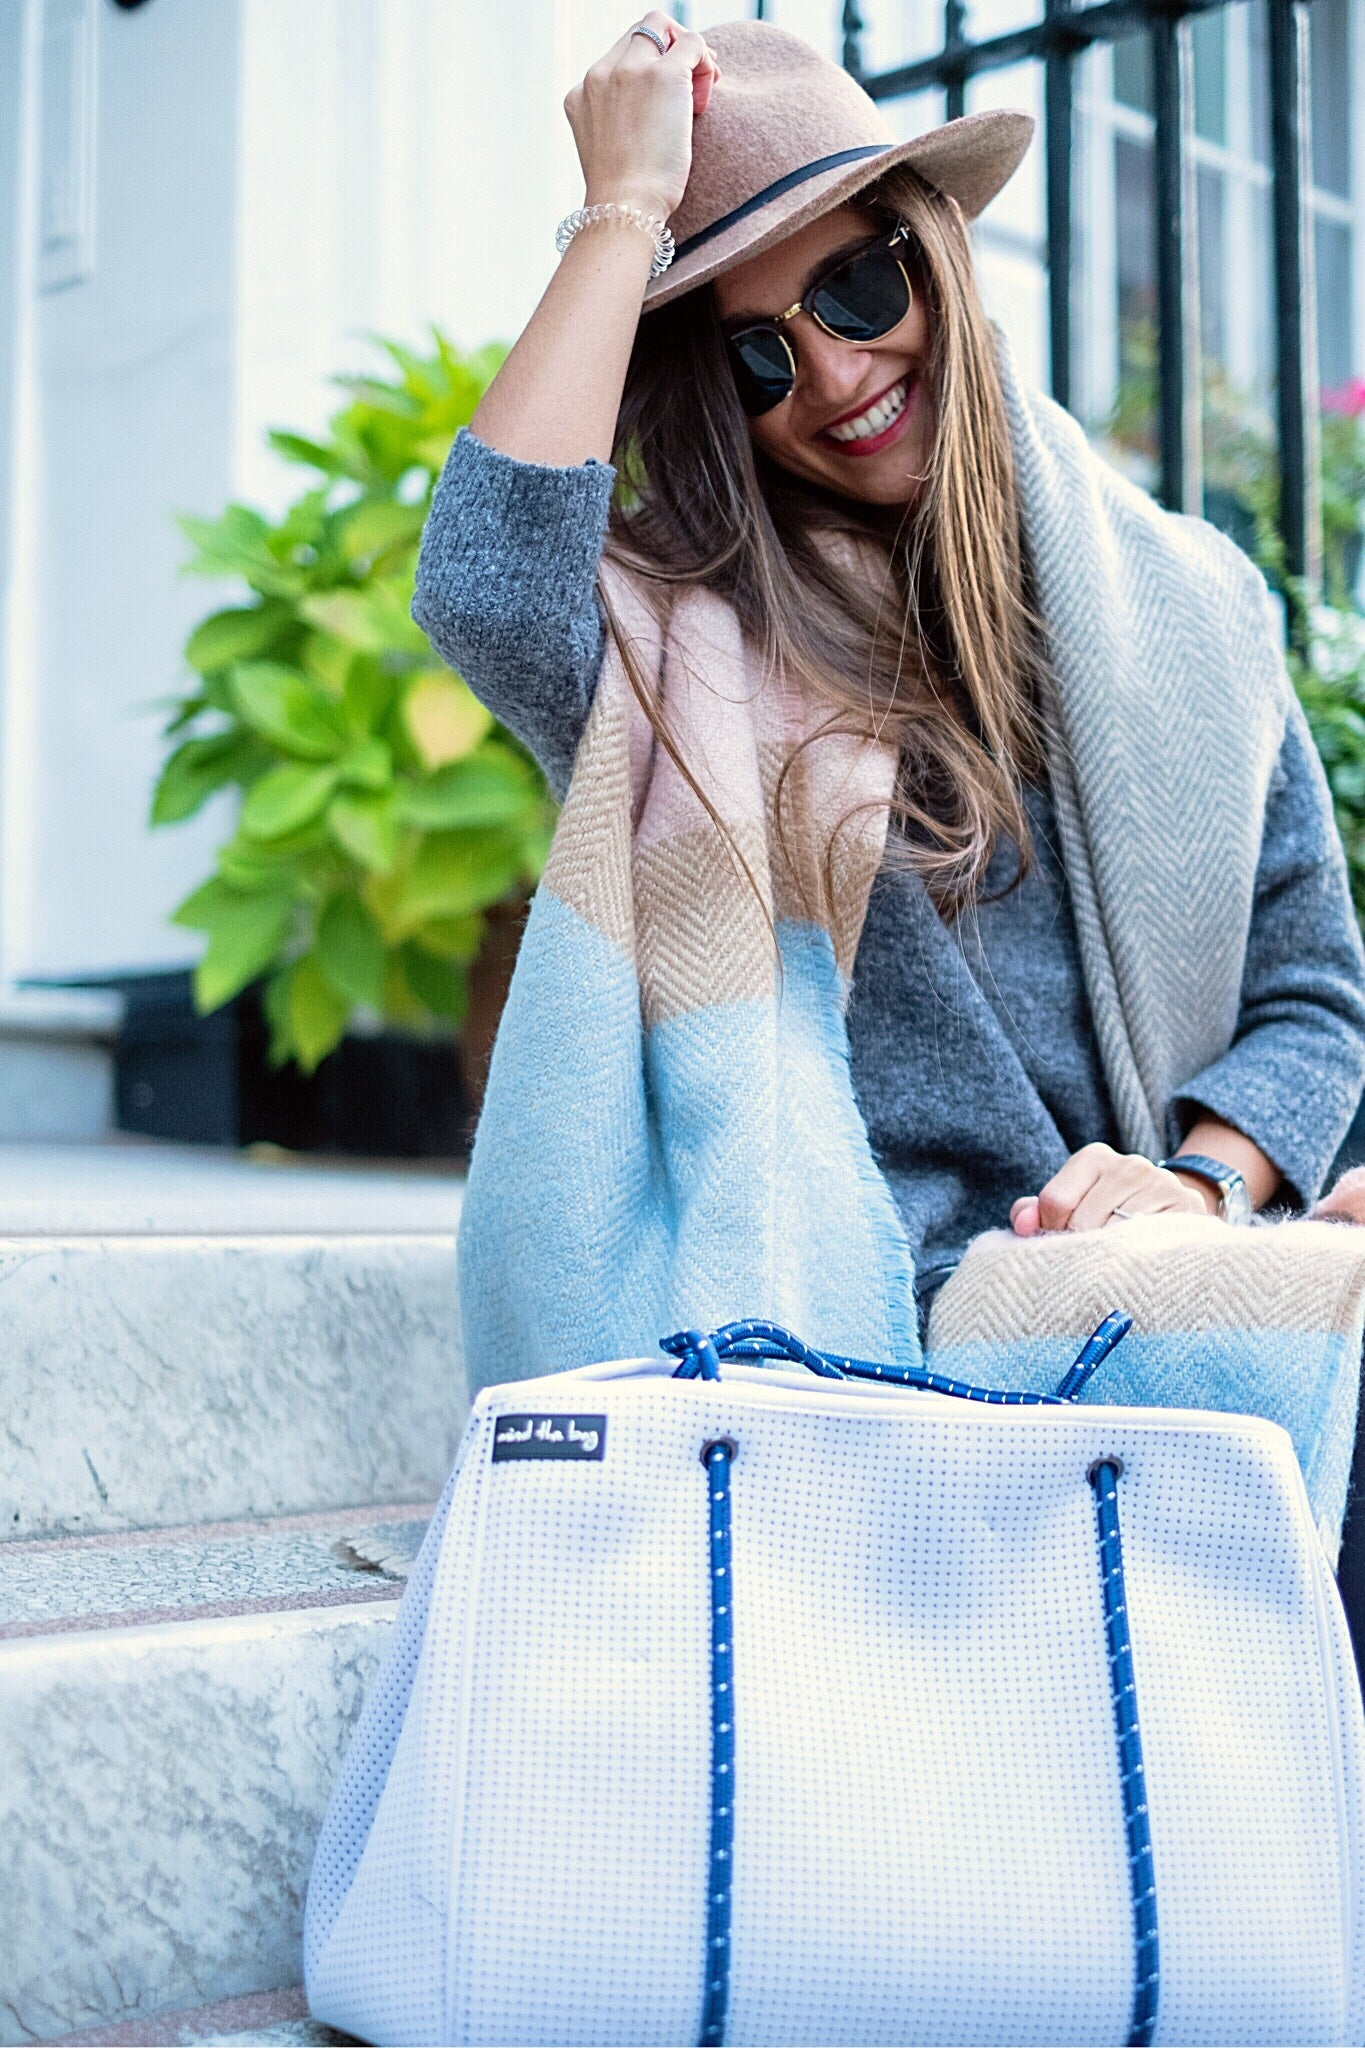 White and Blue neoprene handbag